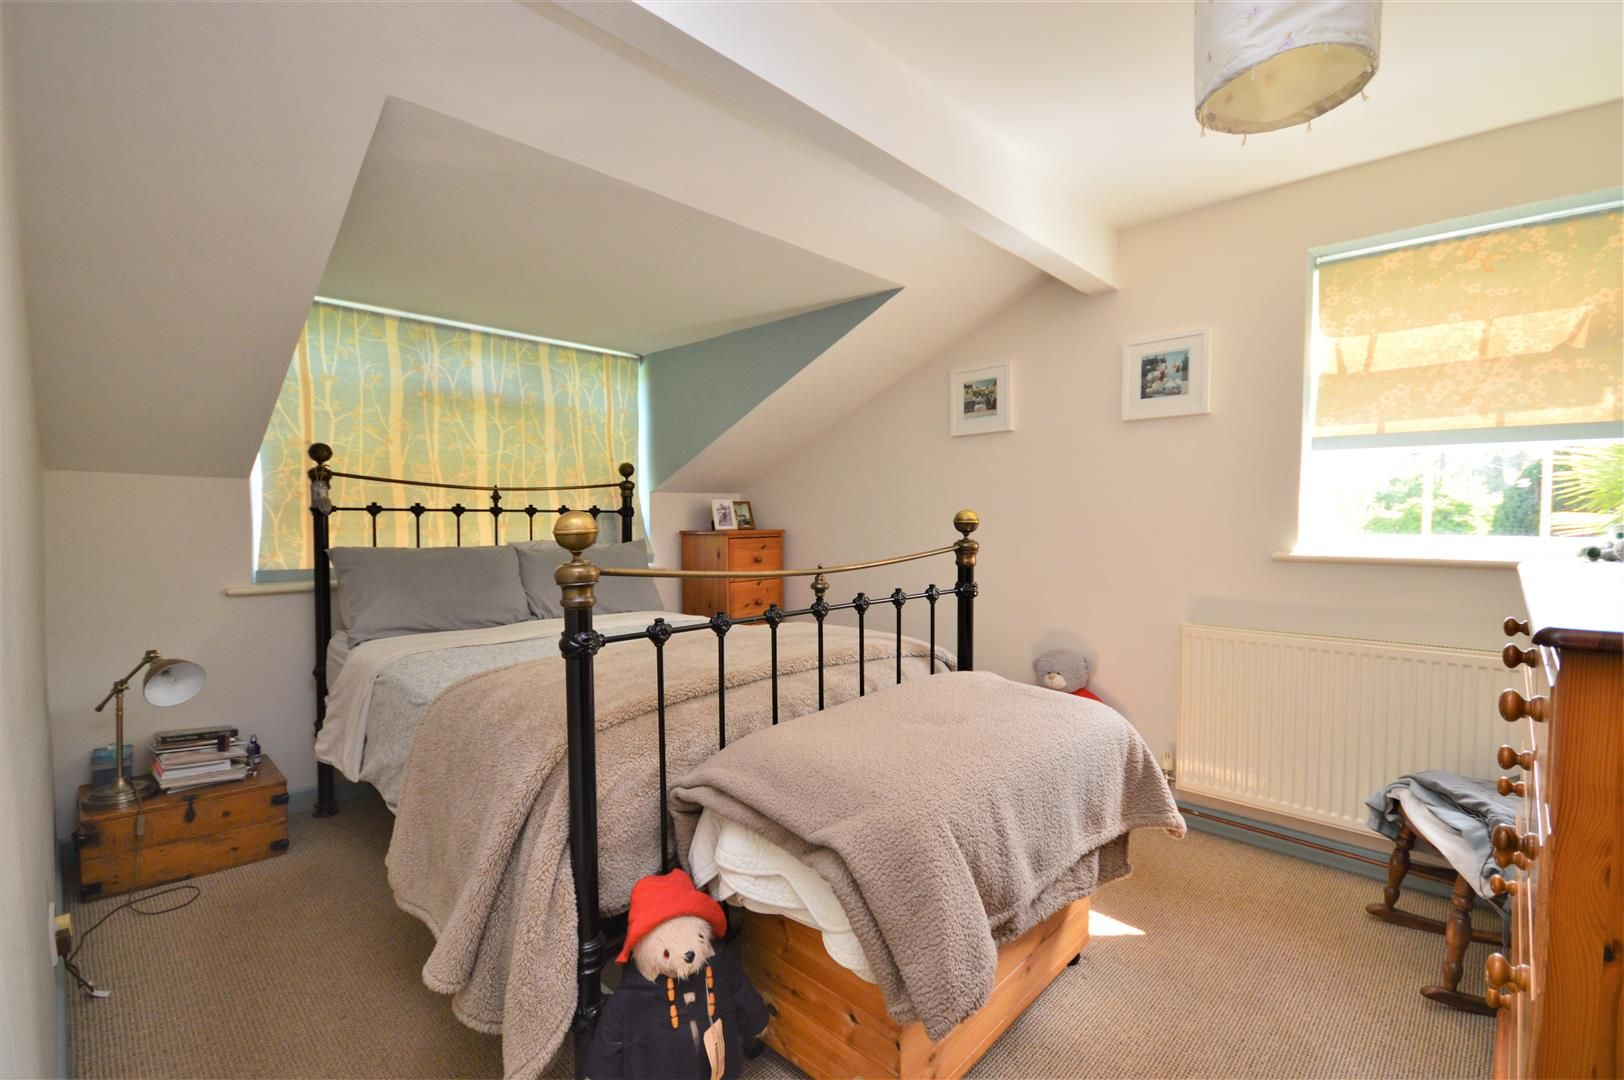 3 bed semi-detached for sale in Stretton Sugwas  - Property Image 10